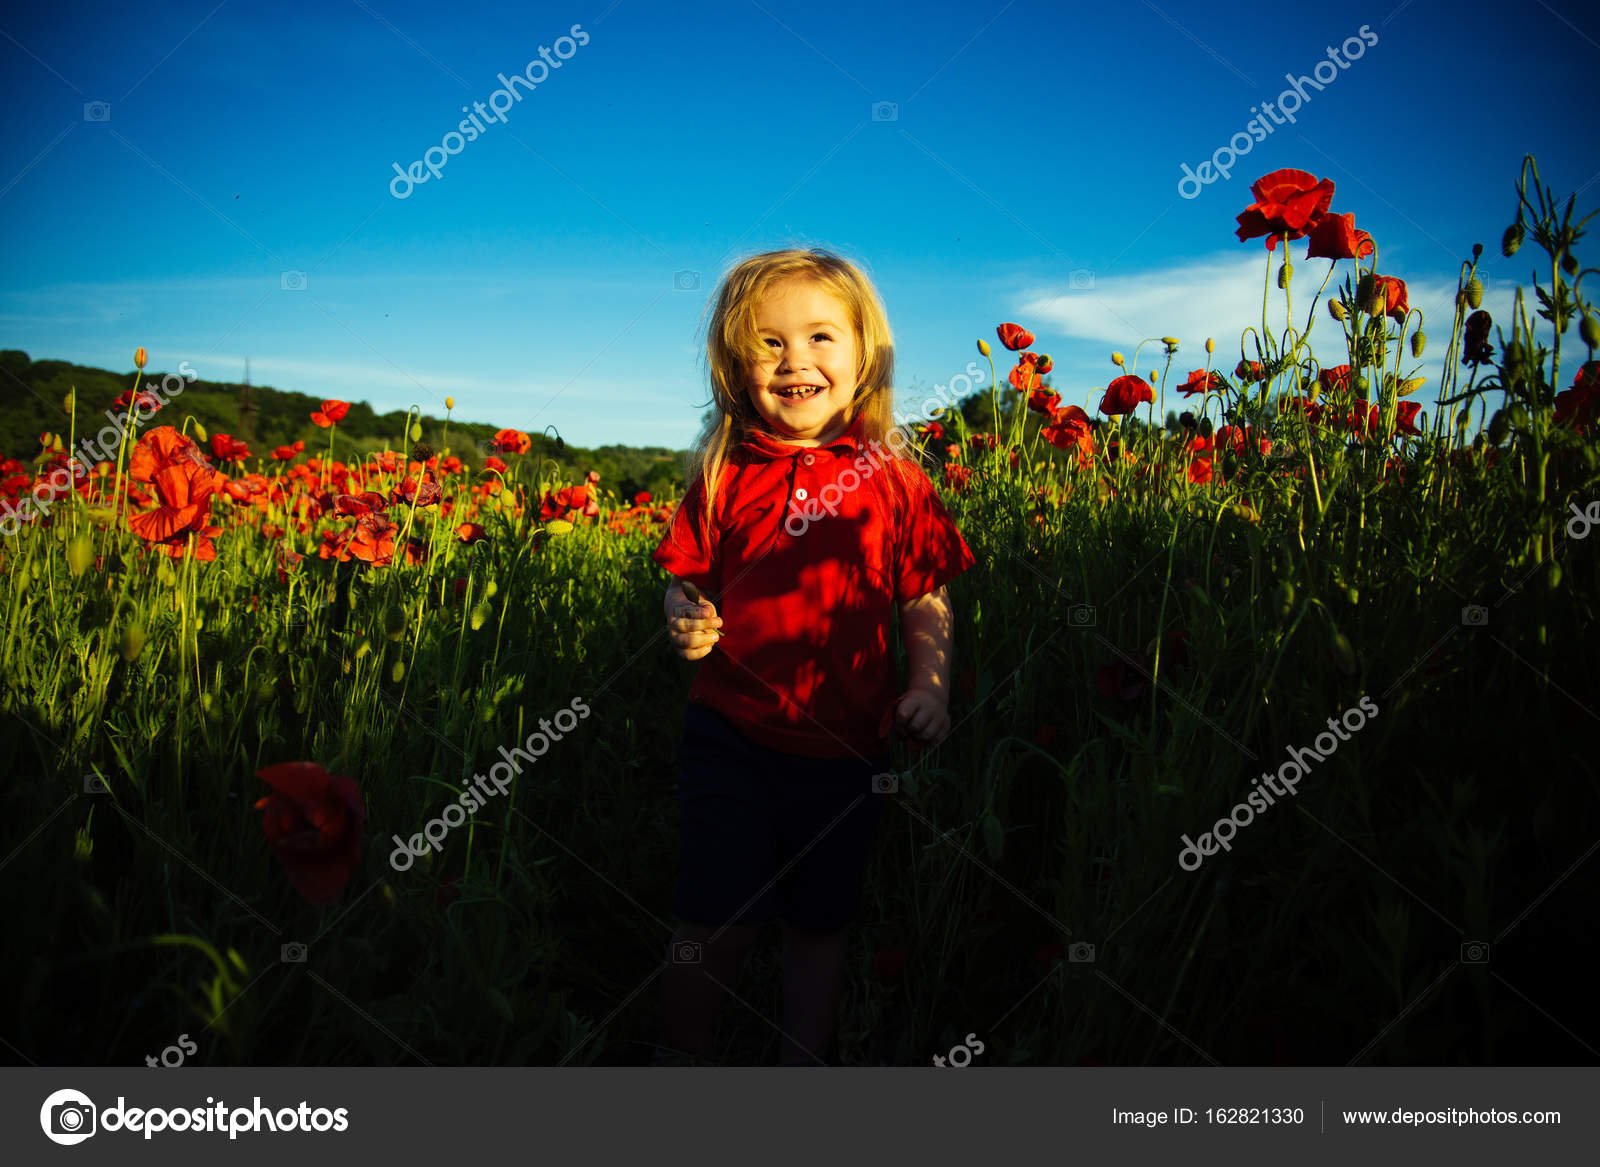 Cute Baby Red Flower And Beautiful Field Happy Childhood Sun And